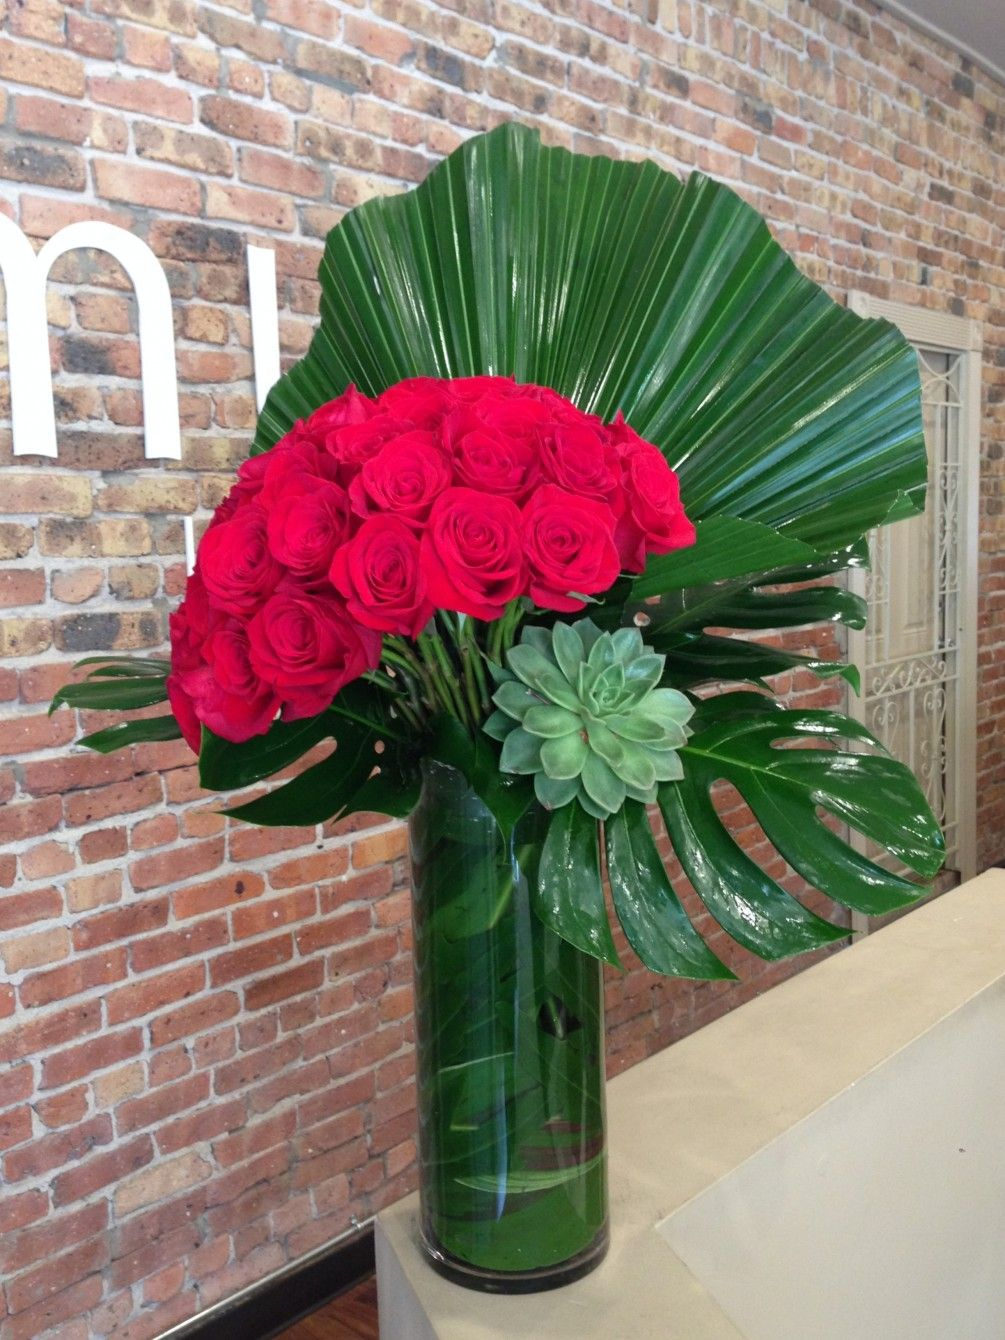 A leaning bouquet of 50 premium, long stemmed red roses